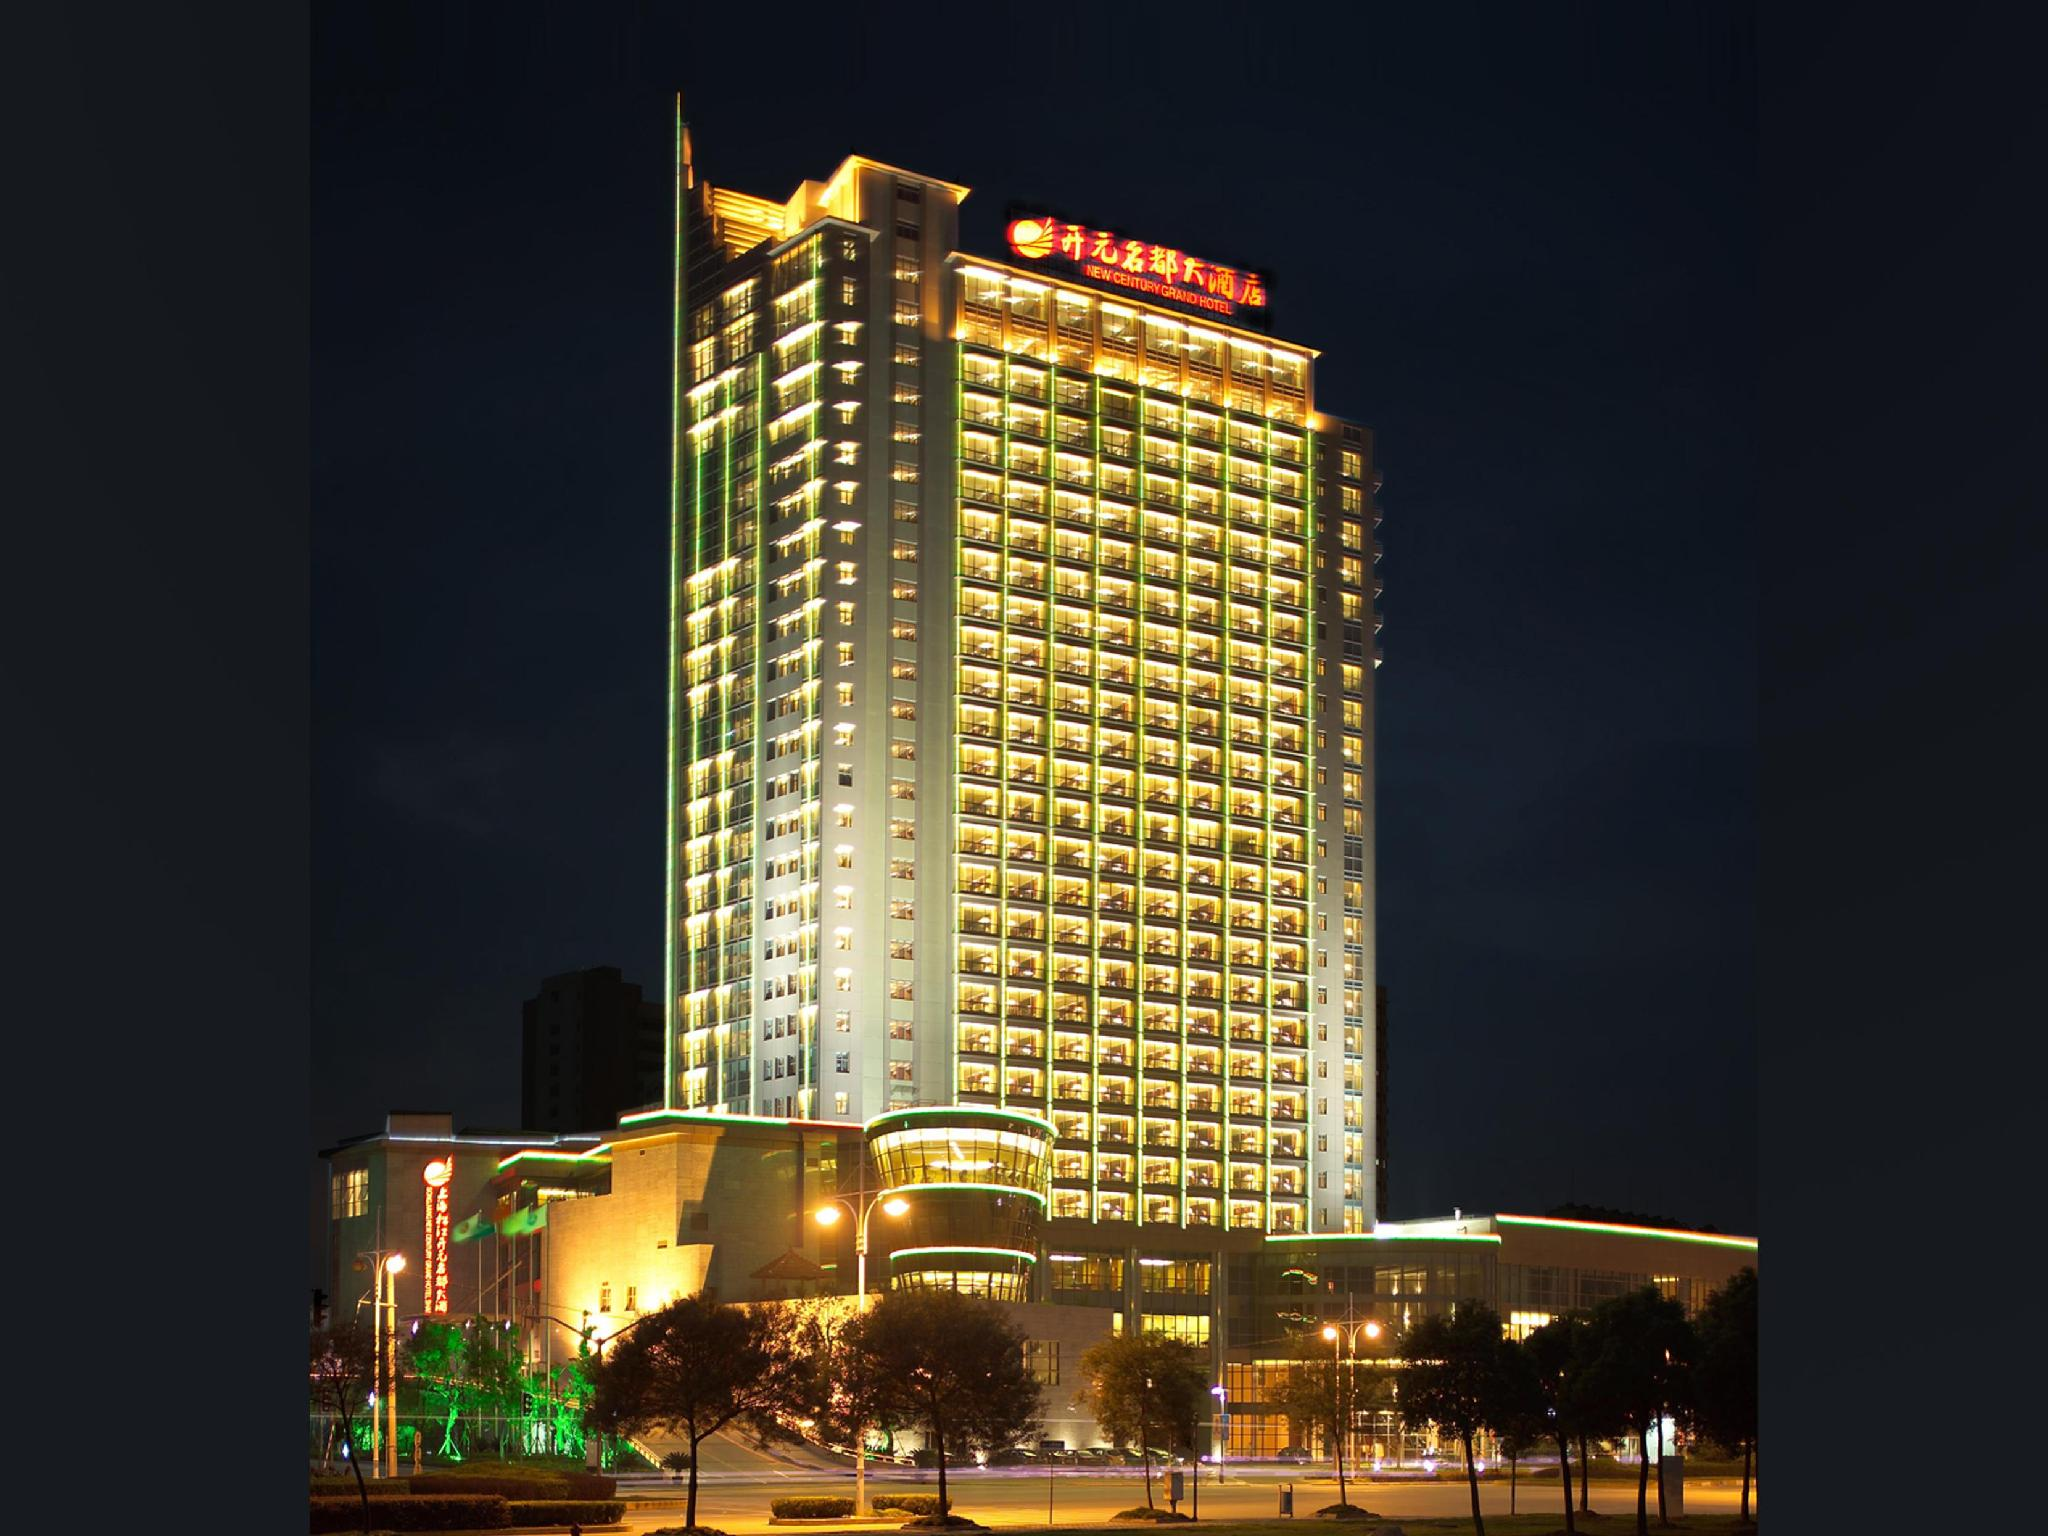 New Century Grand Hotel Songjiang Shanghai